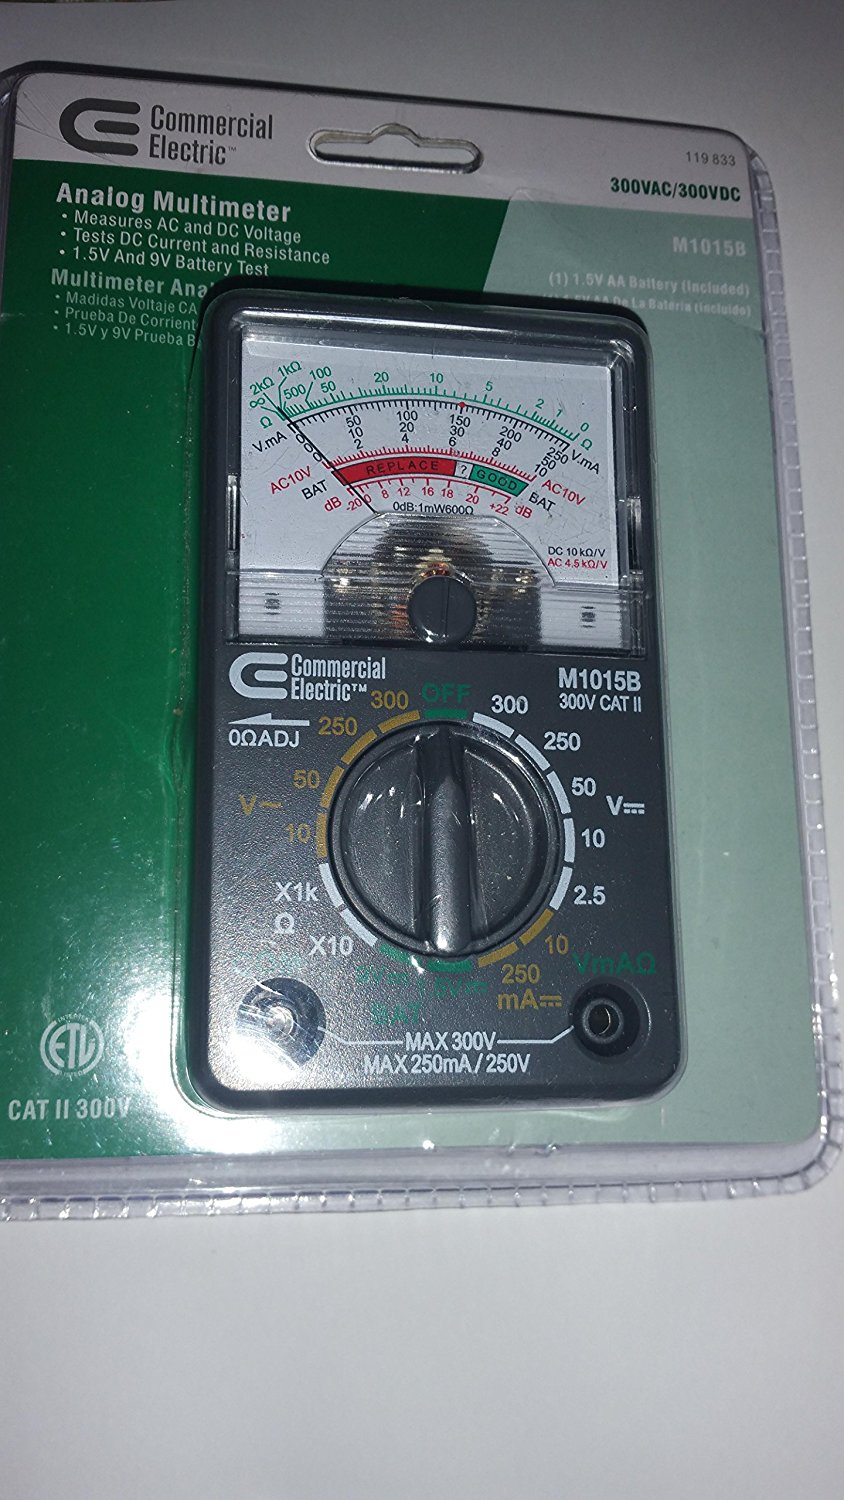 cheap etek 10709 digital multimeter manual find etek 10709 digital rh guide alibaba com Etek Multimeter Repair etek multimeter 10729 manual pdf